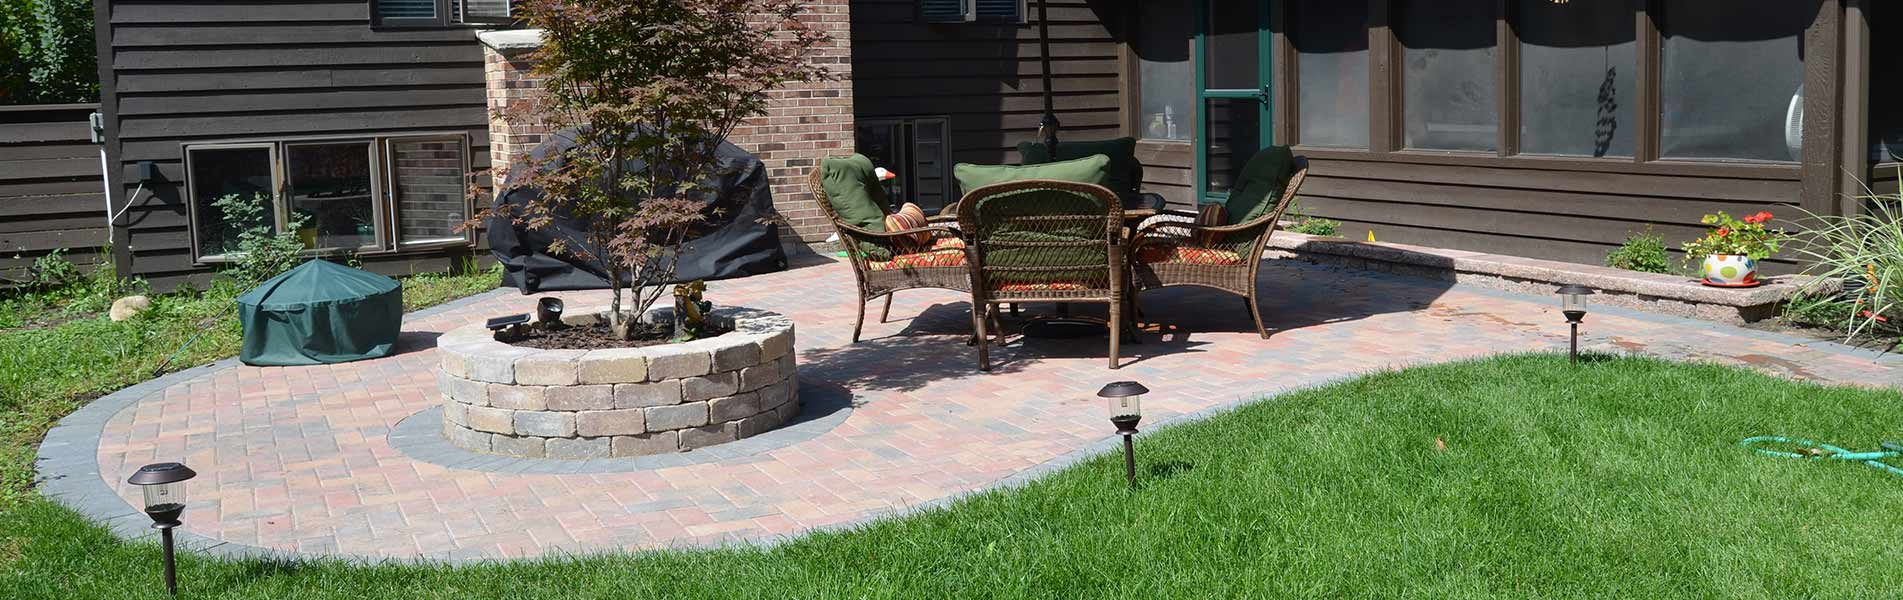 Custom Landscape Design & Development Services by B&C Pavers & Landscaping Inc.